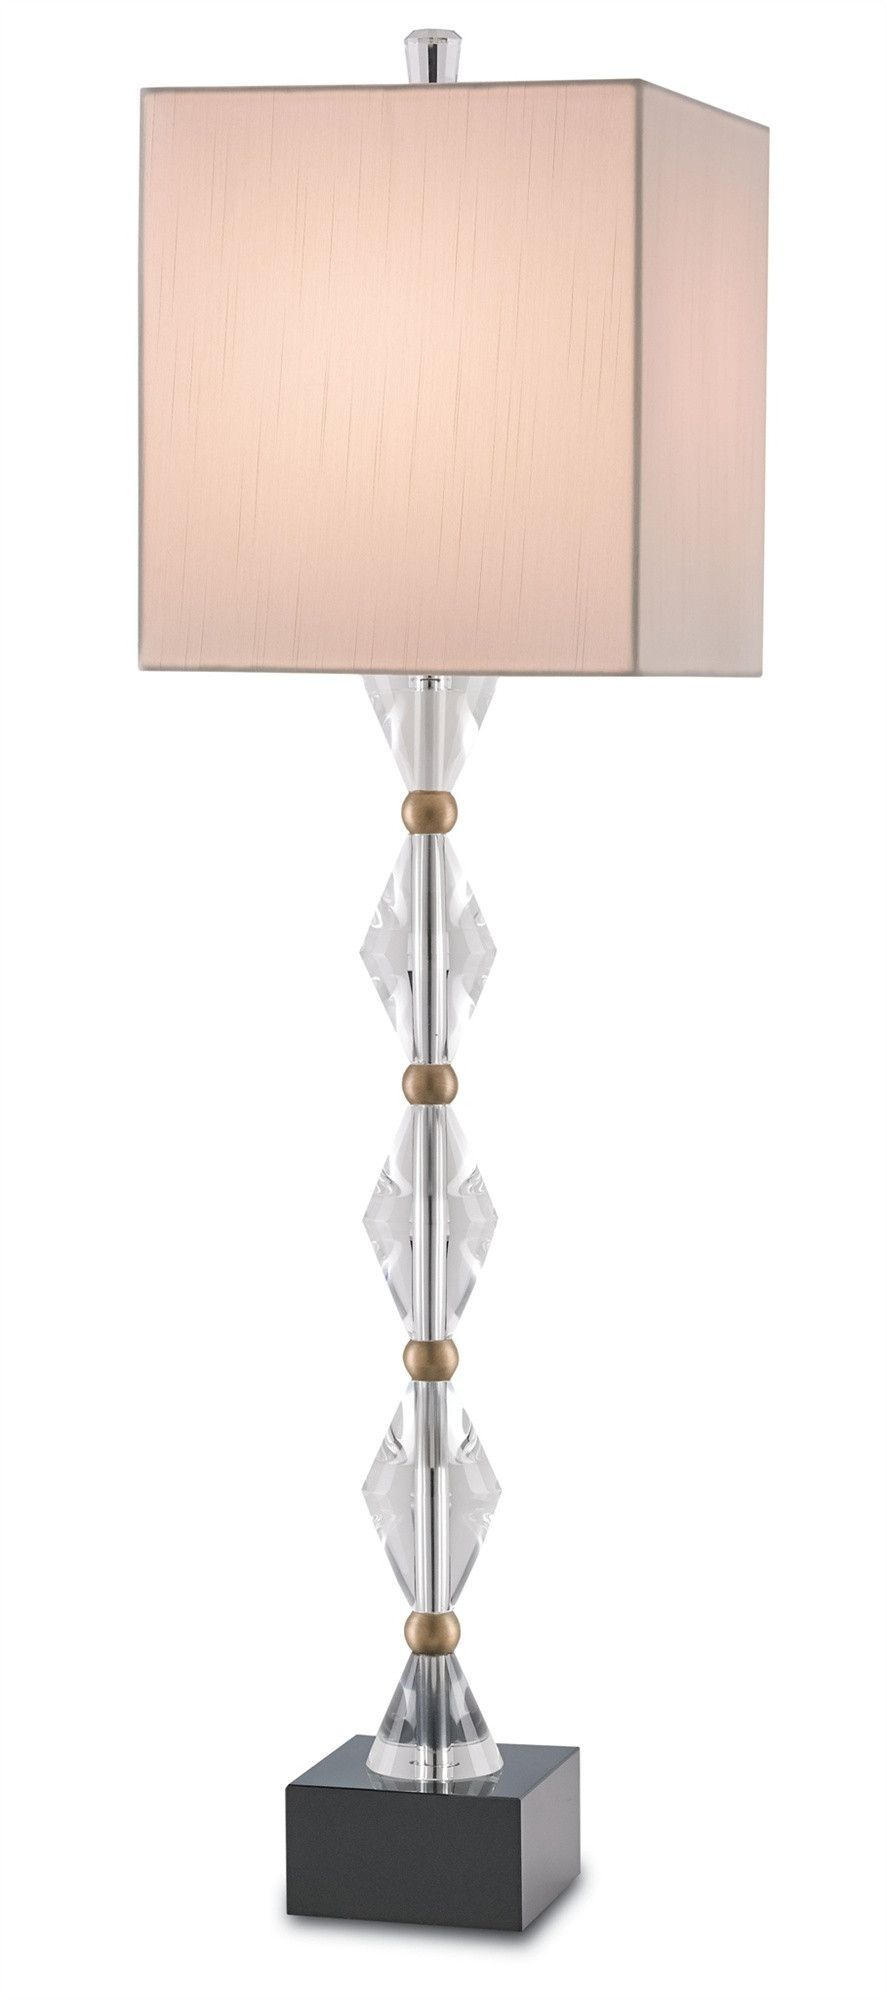 Quaintrelle Table Lamp design by Currey & Company